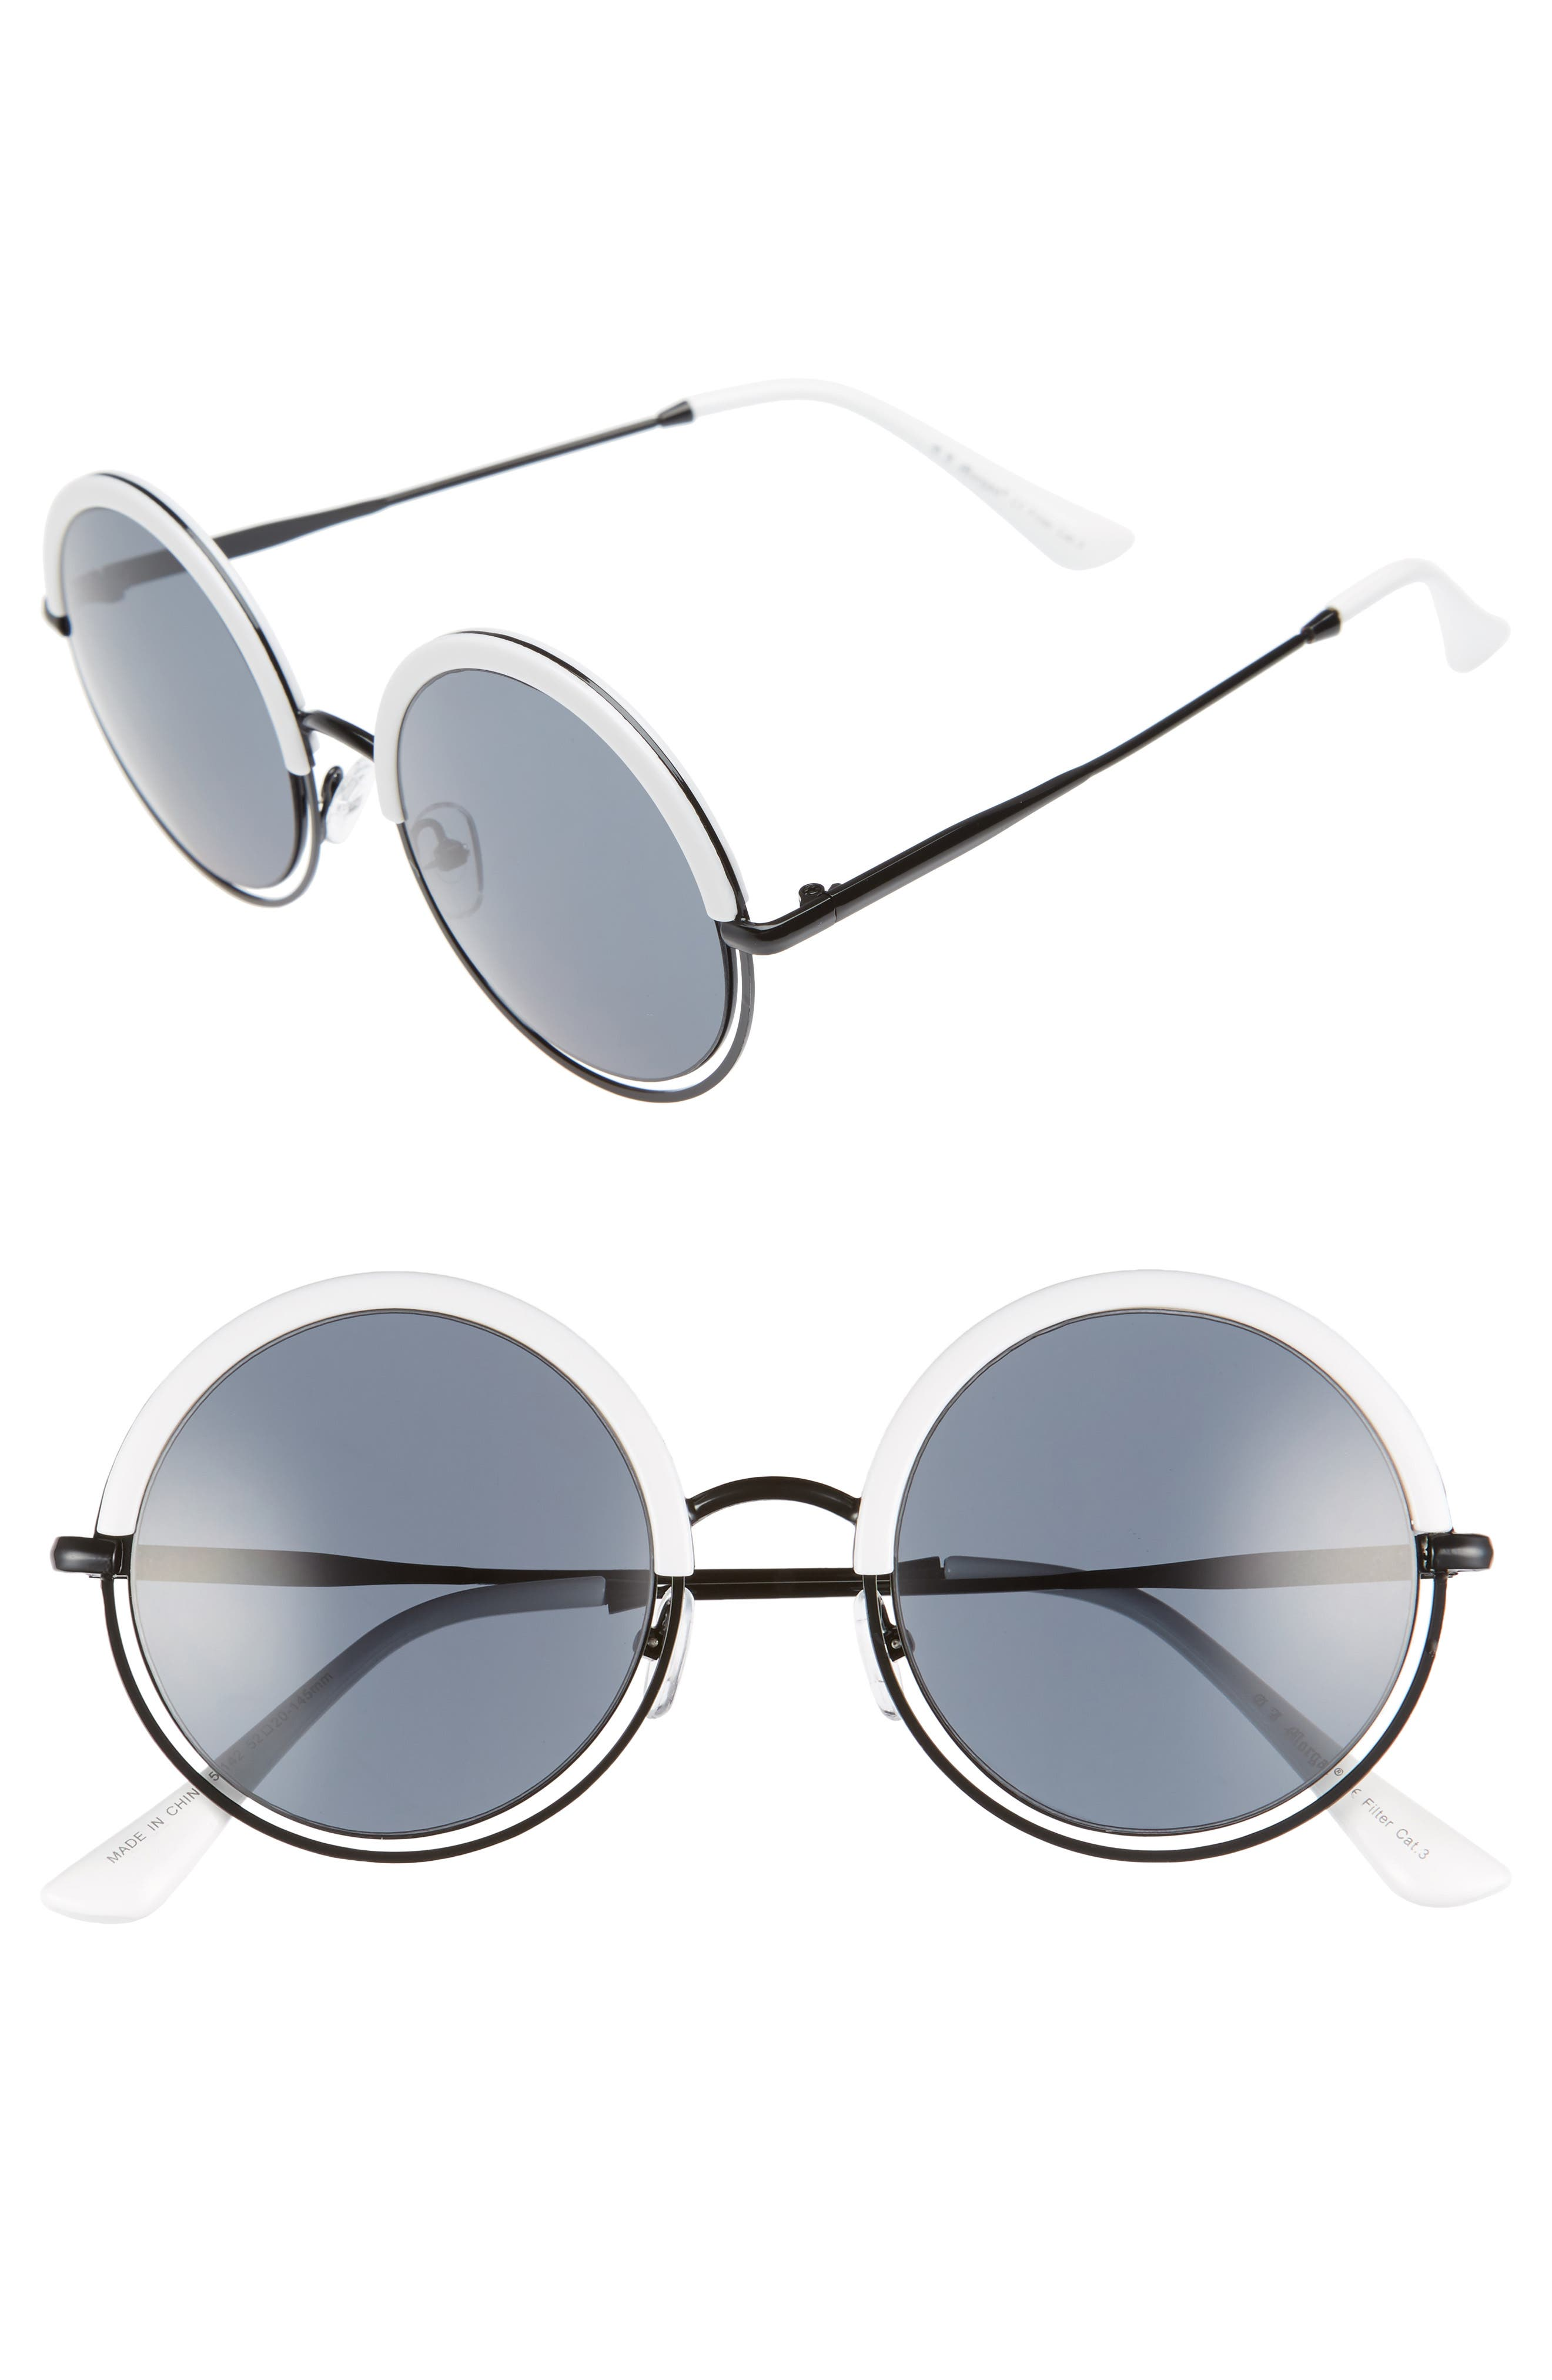 A.J. MORGAN Pancakes 52mm Gradient Lens Round Sunglasses